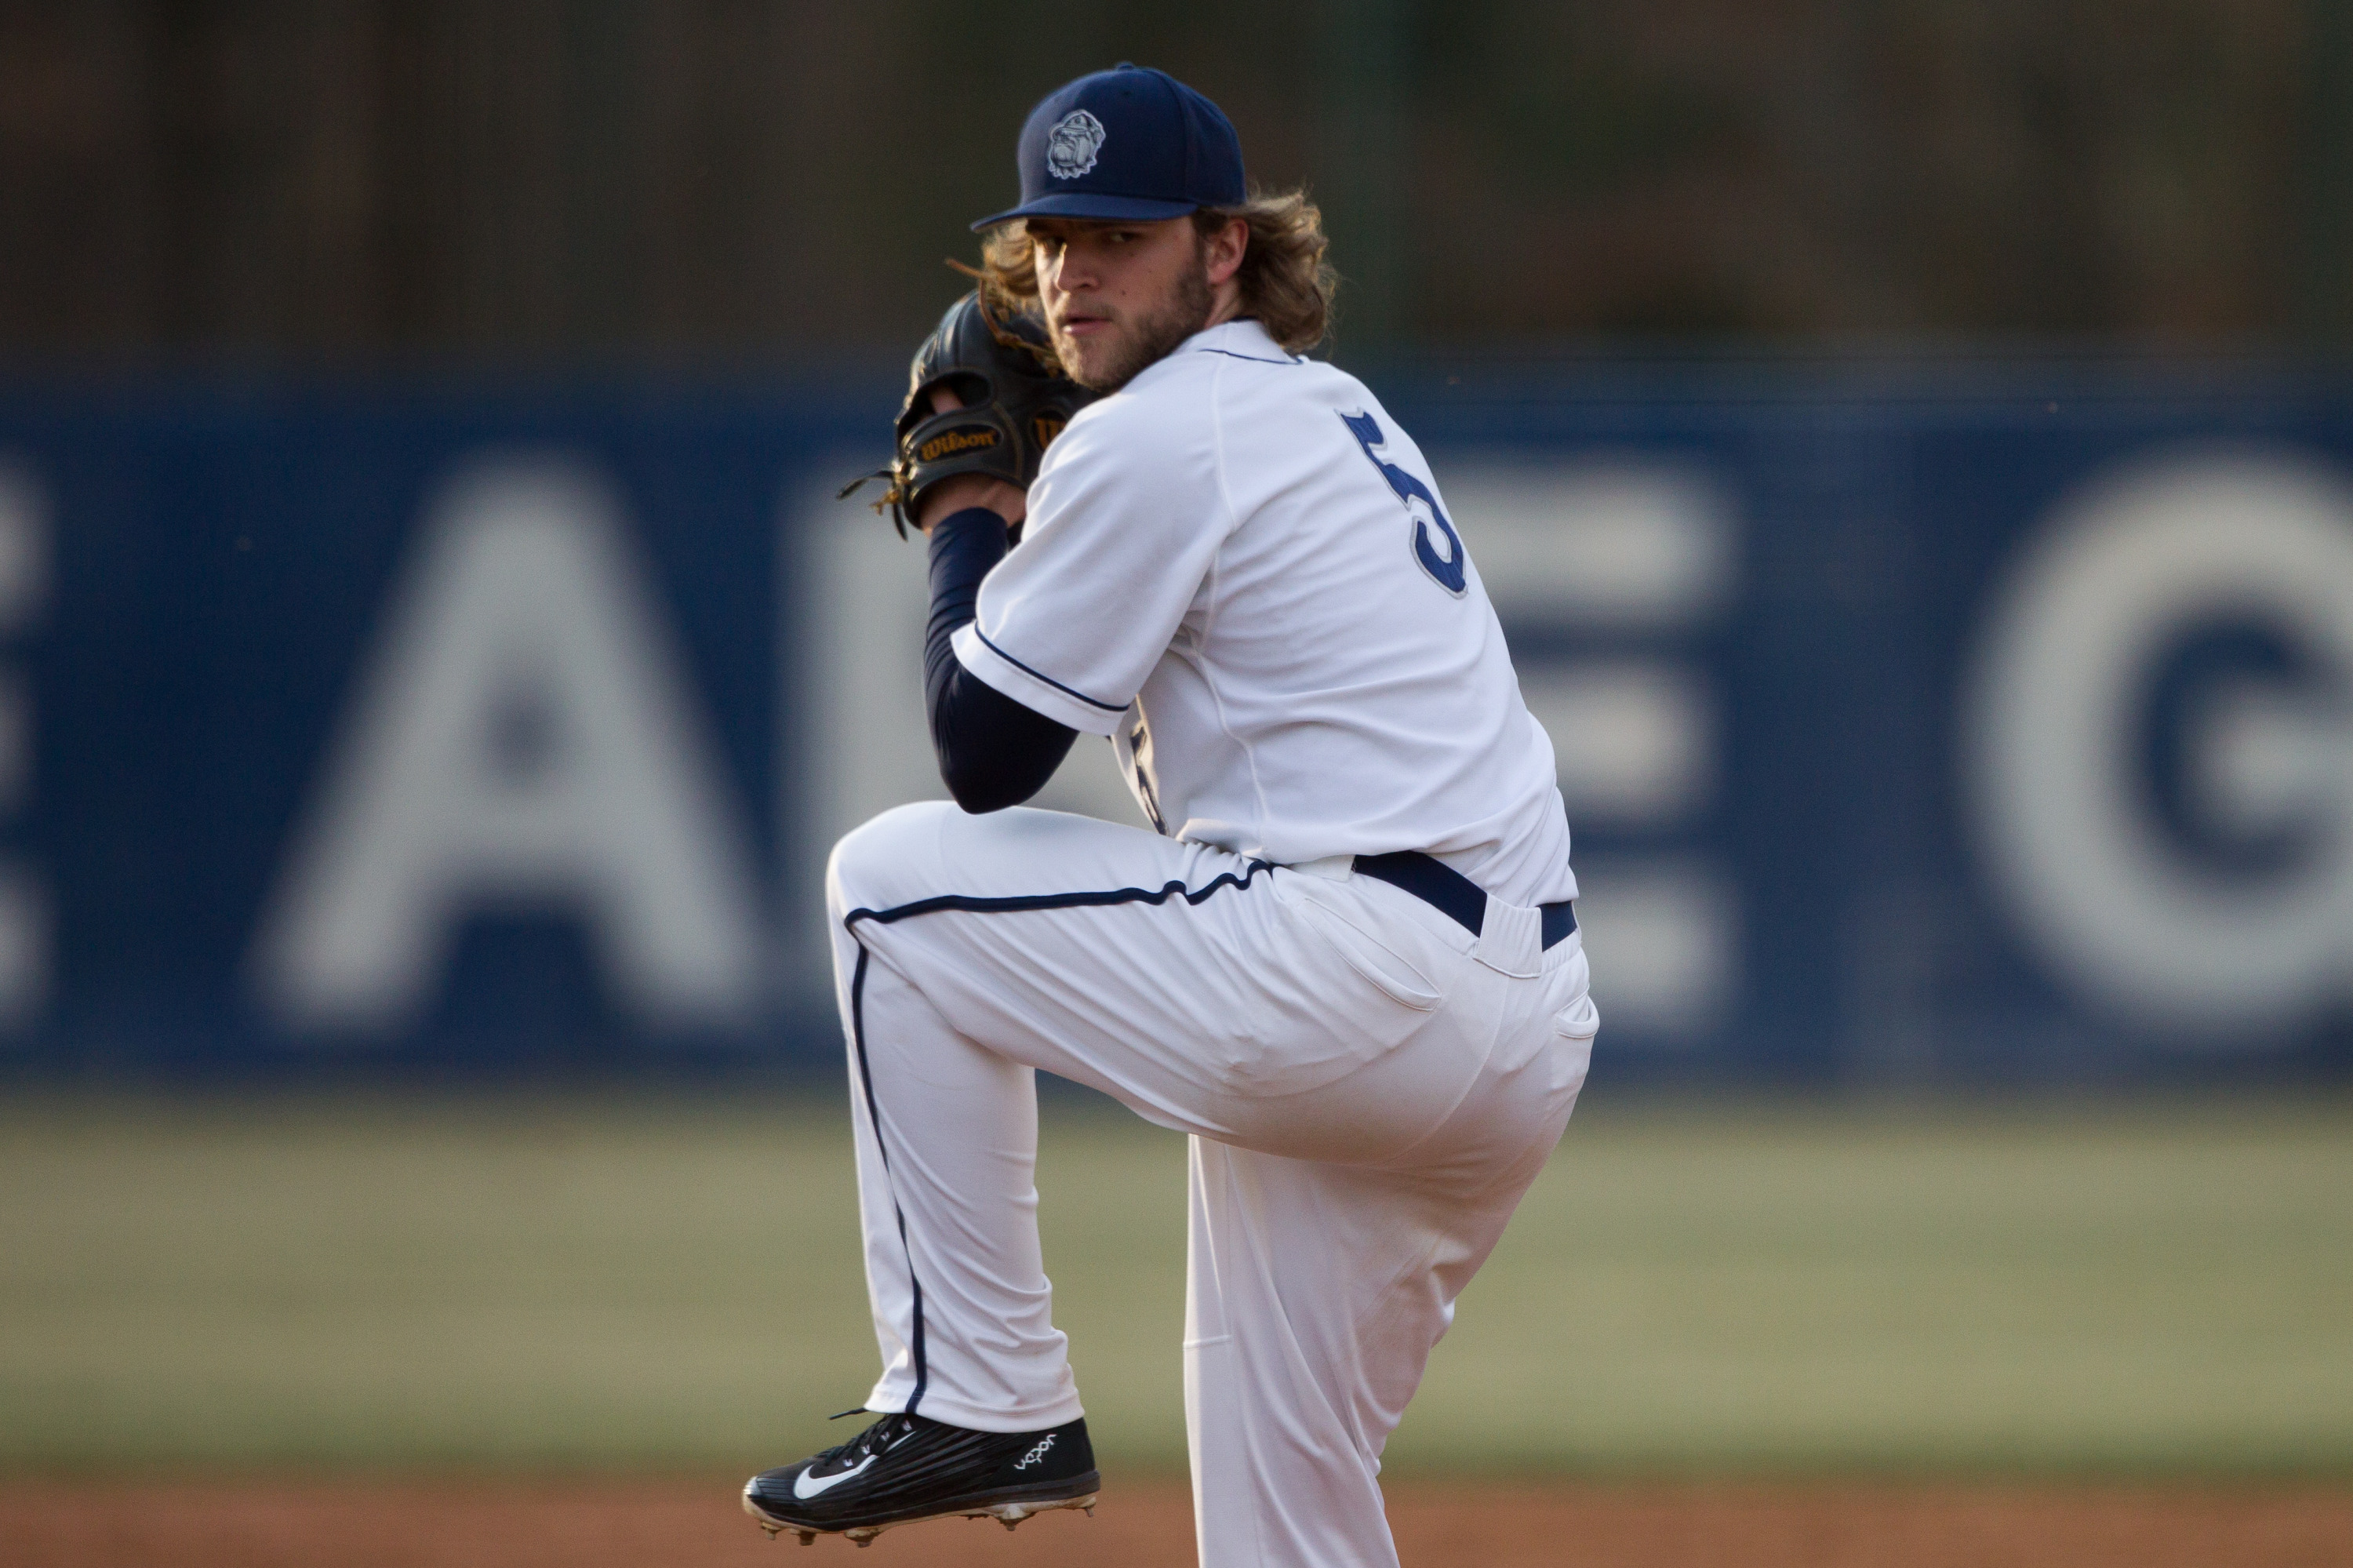 Ellingson earned his second selection after registering two saves with four strikeouts last week